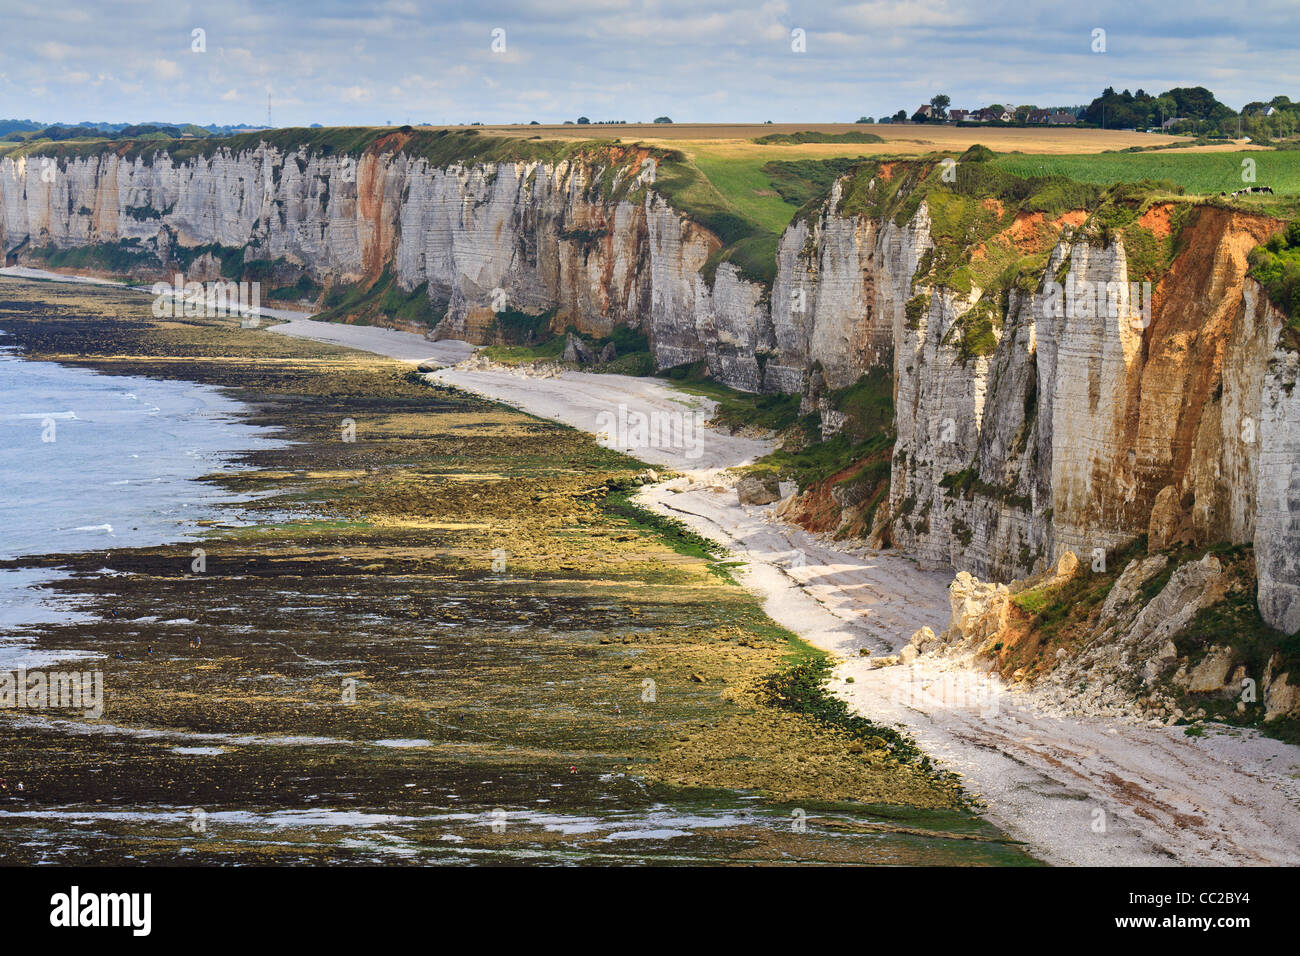 Cliffs near Etretat and Fecamp, Normandy, France - Stock Image